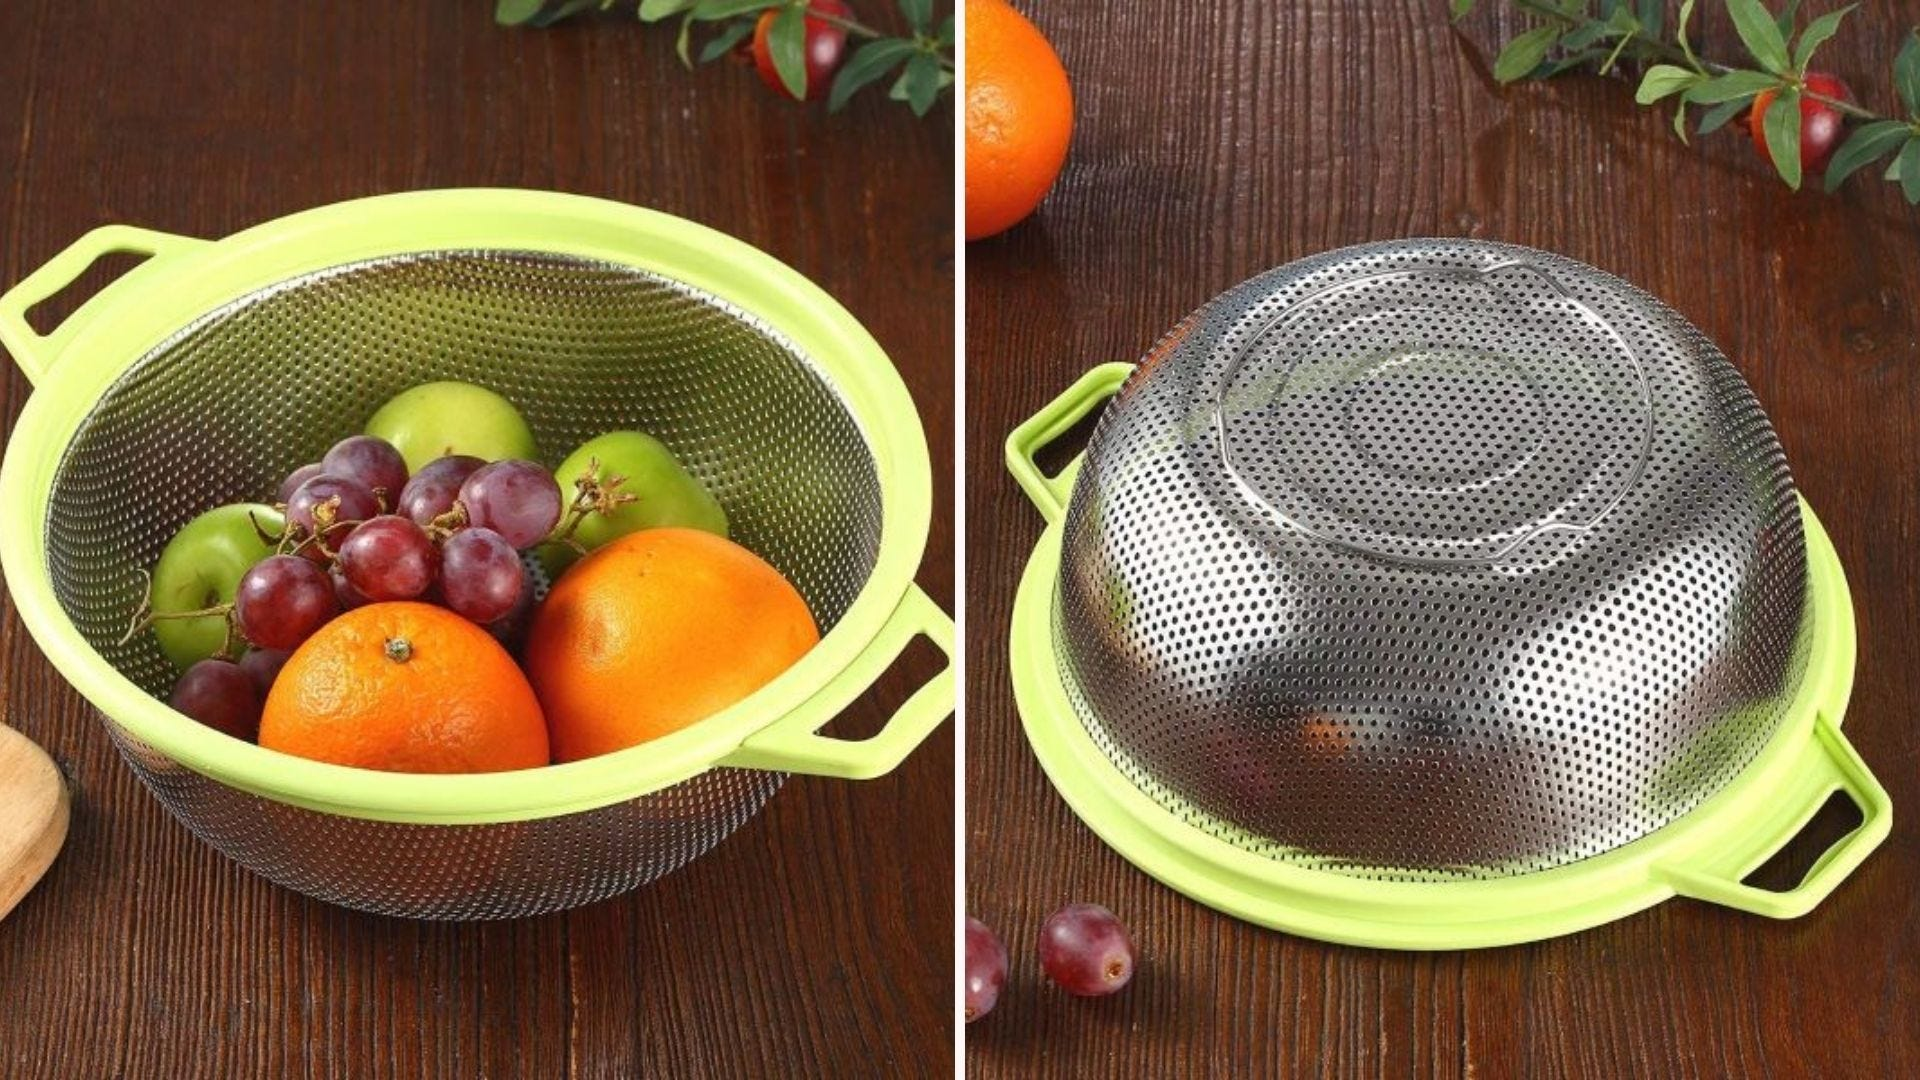 Stainless-Steel Colander with fruit in it.